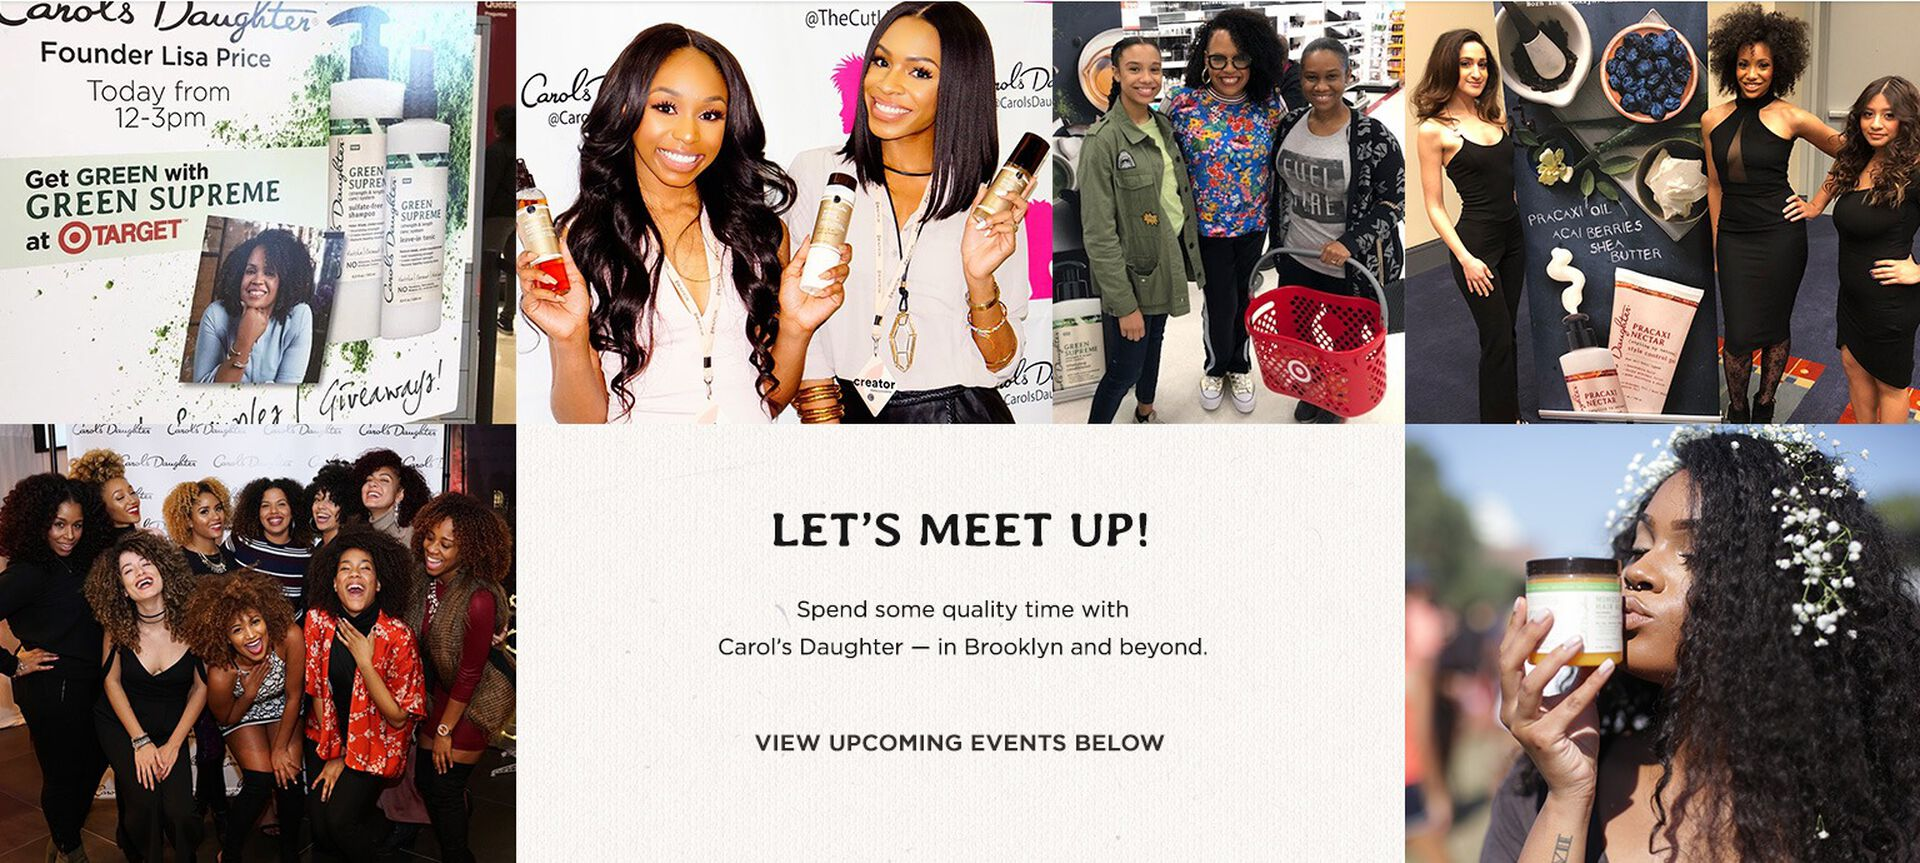 Let's Meet Up! Spend some quality time with Carol's Daughter - in Brooklyn and beyond. View Upcoming Events.